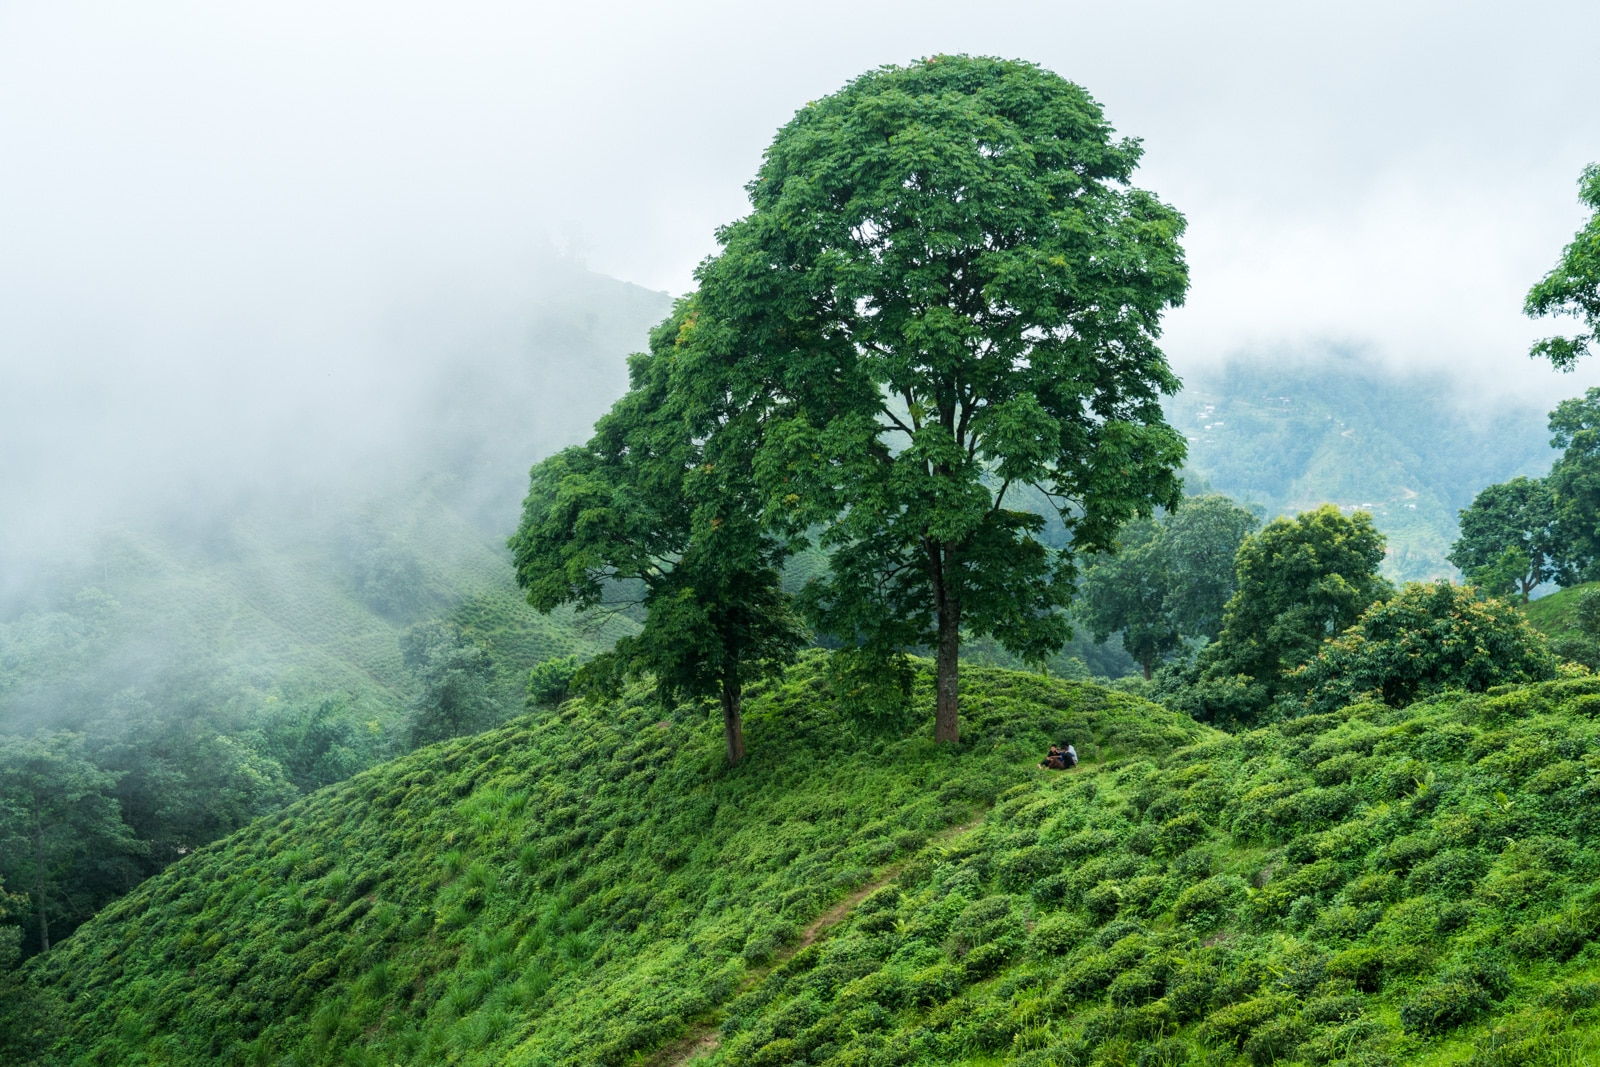 Travel in Nepal during monsoon - Ilam covered in clouds - Lost With Purpose travel blog